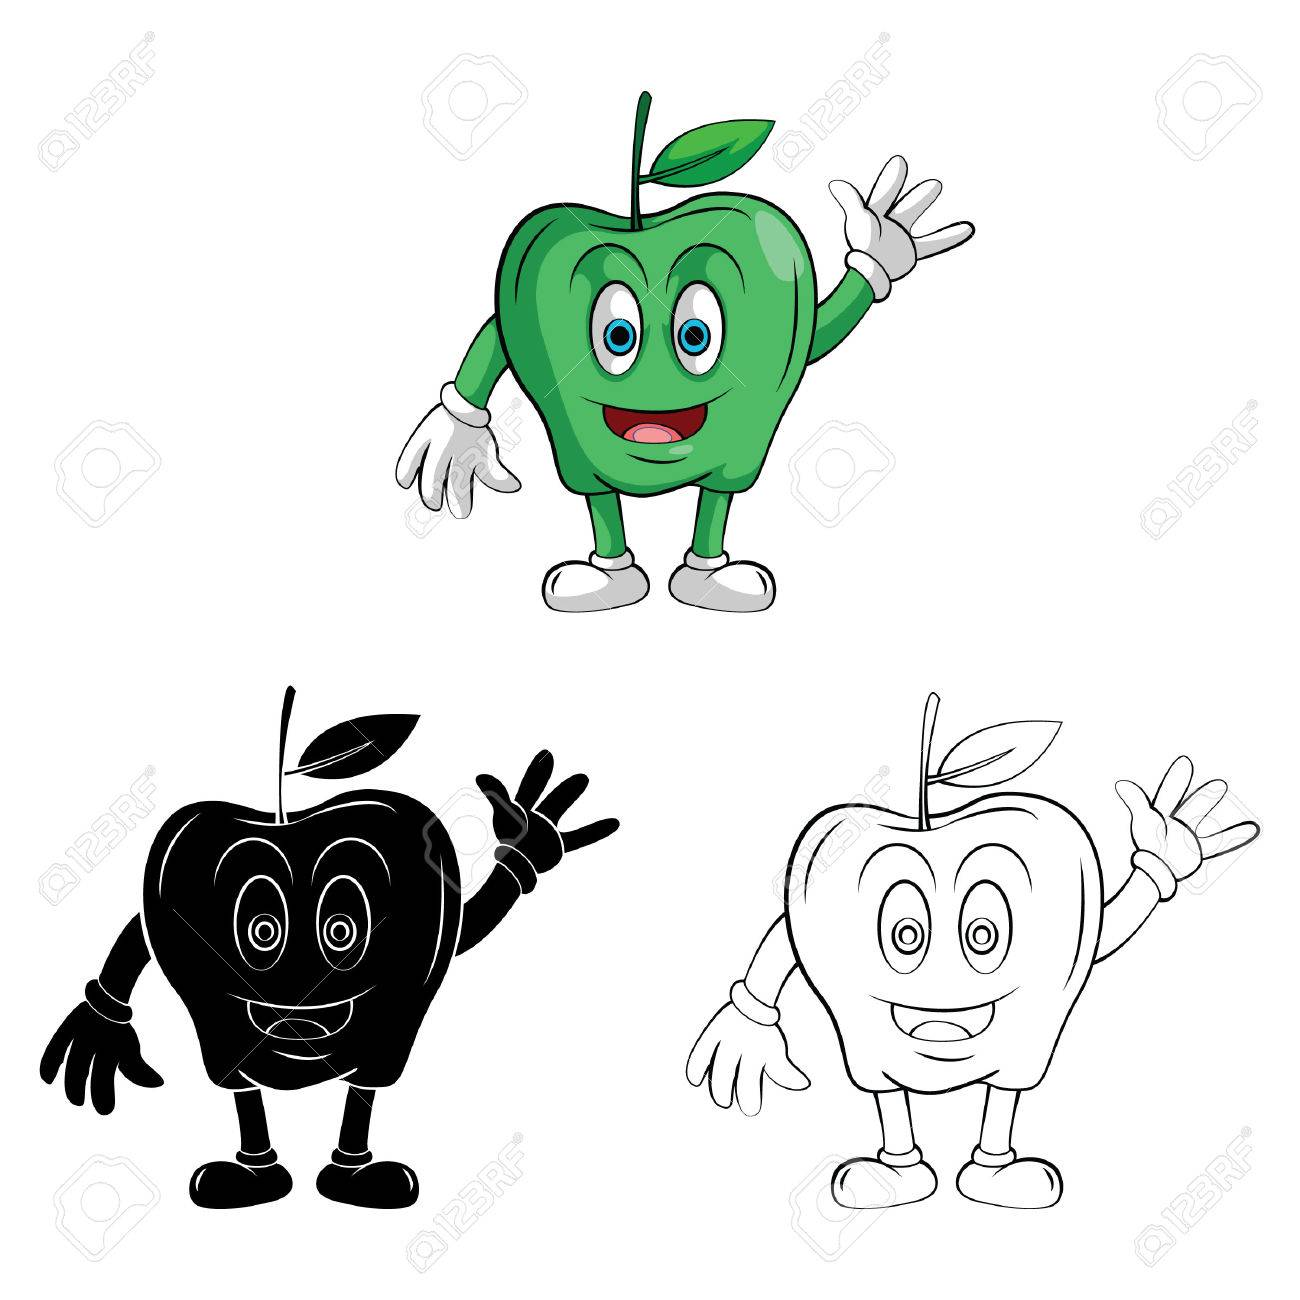 Coloring Book Apple Smile Cartoon Character Royalty Free Cliparts ...